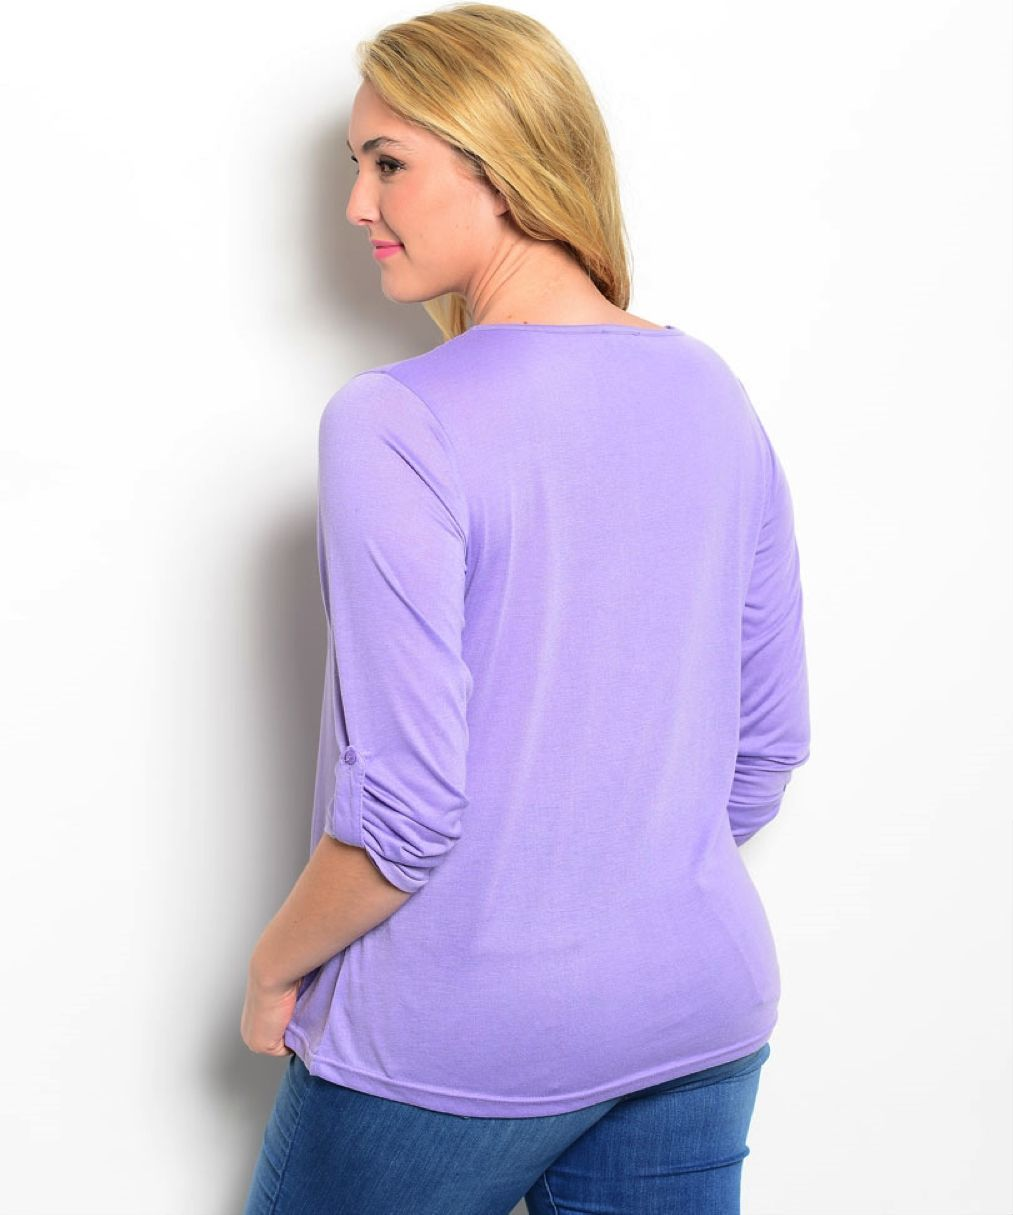 Image 1 of Romantic Purple Polyester 3/4 Plus Sleeves Tunic Top, Embellished Neckline - Pur